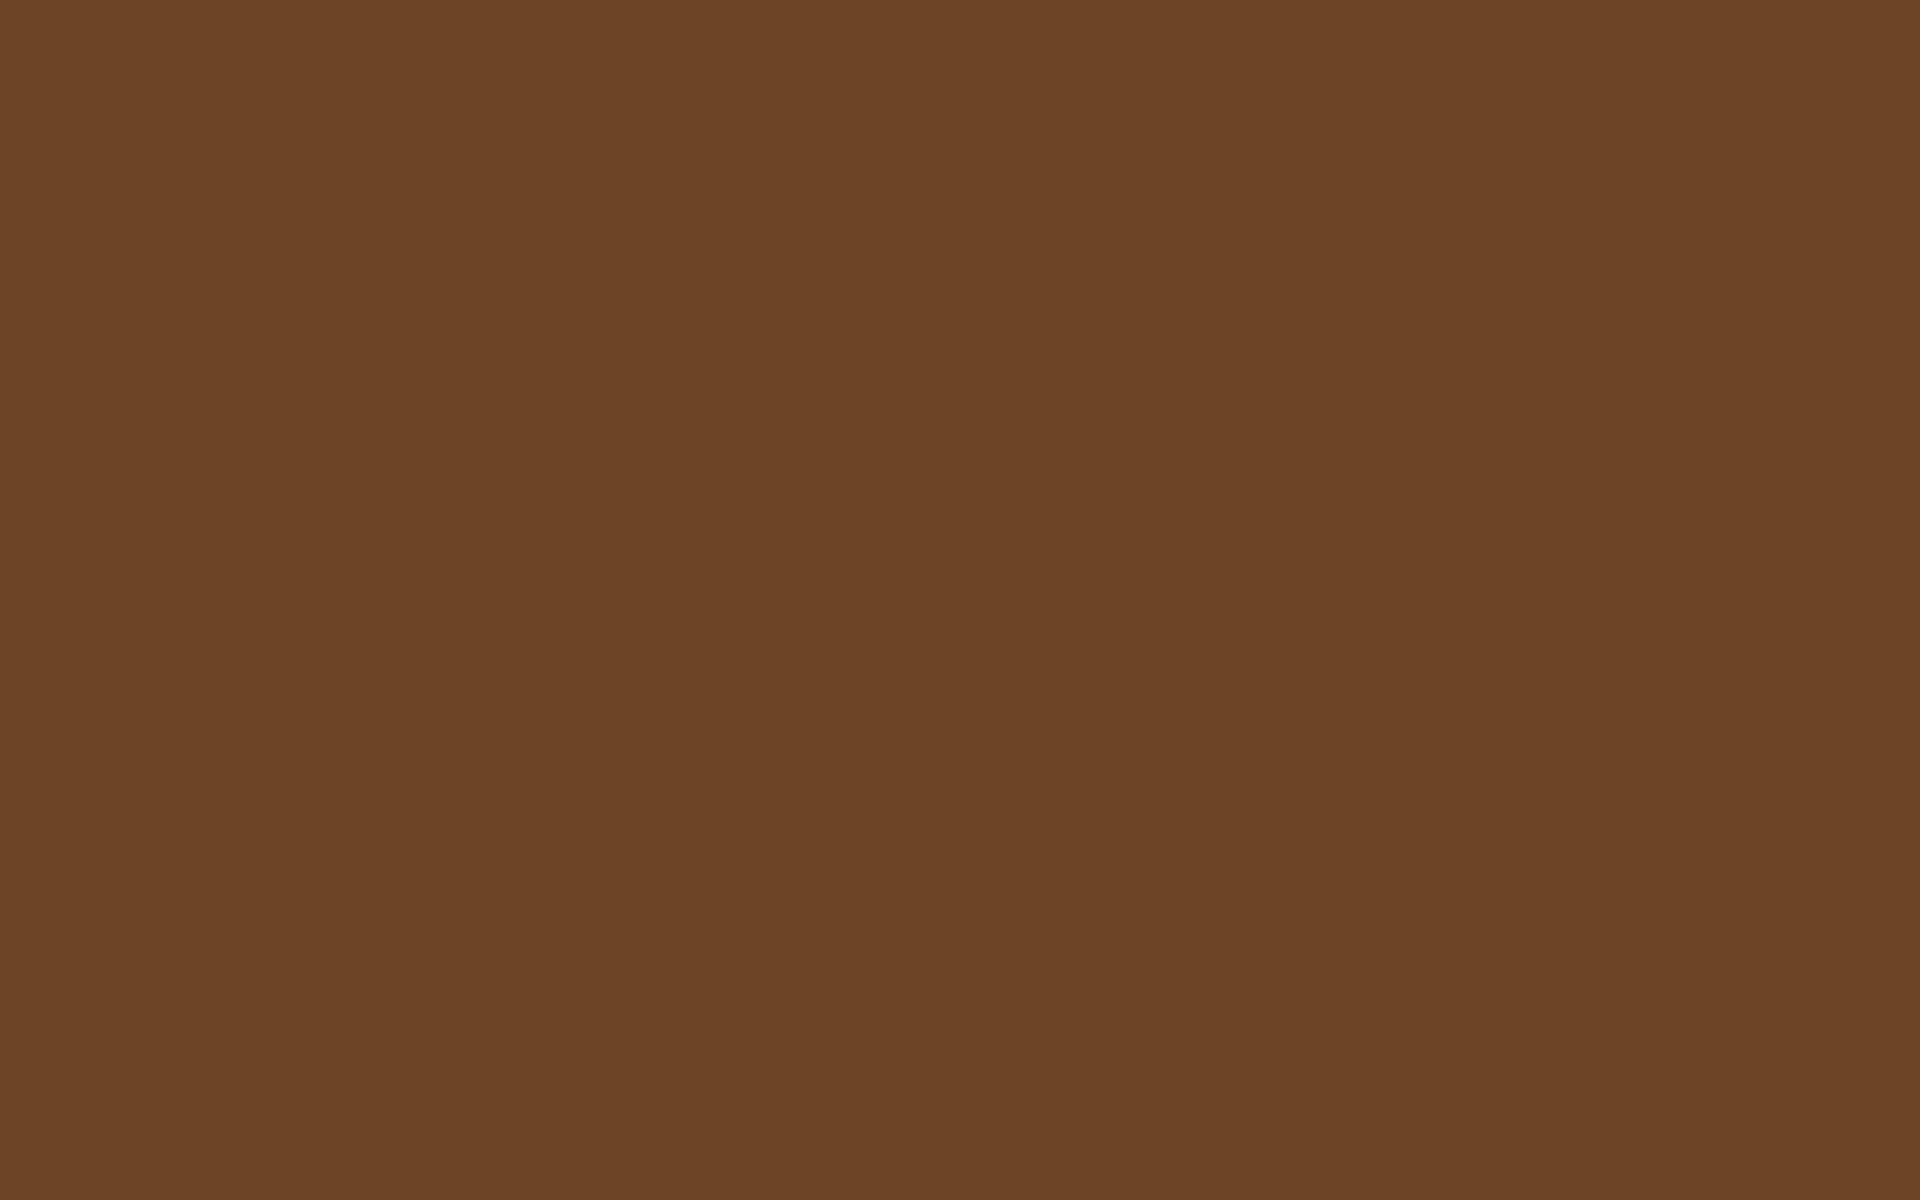 1920x1200 Flattery Solid Color Background